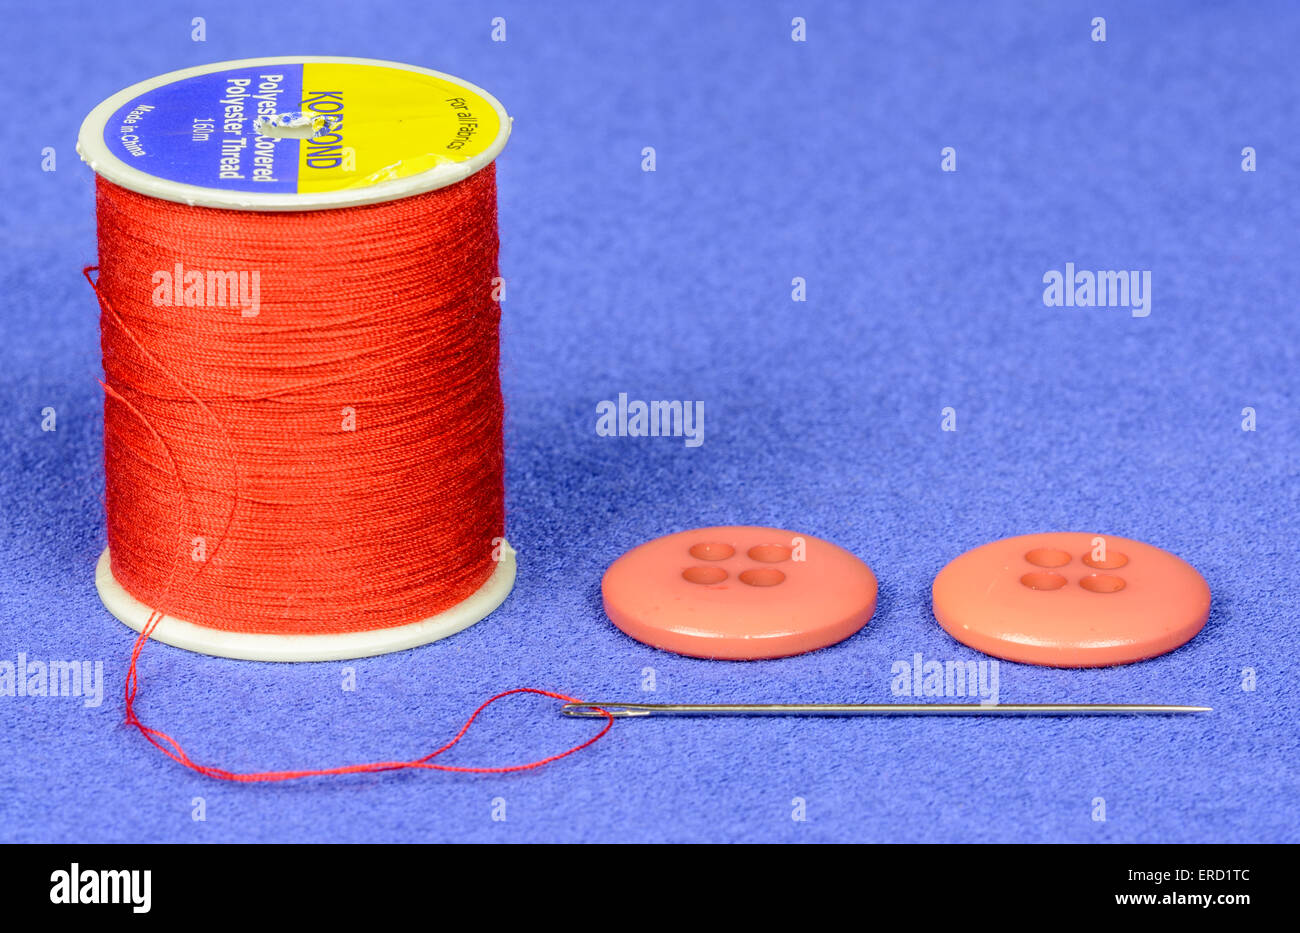 Closeup of a reel of red cotton with red buttons and a threaded sewing needle. - Stock Image